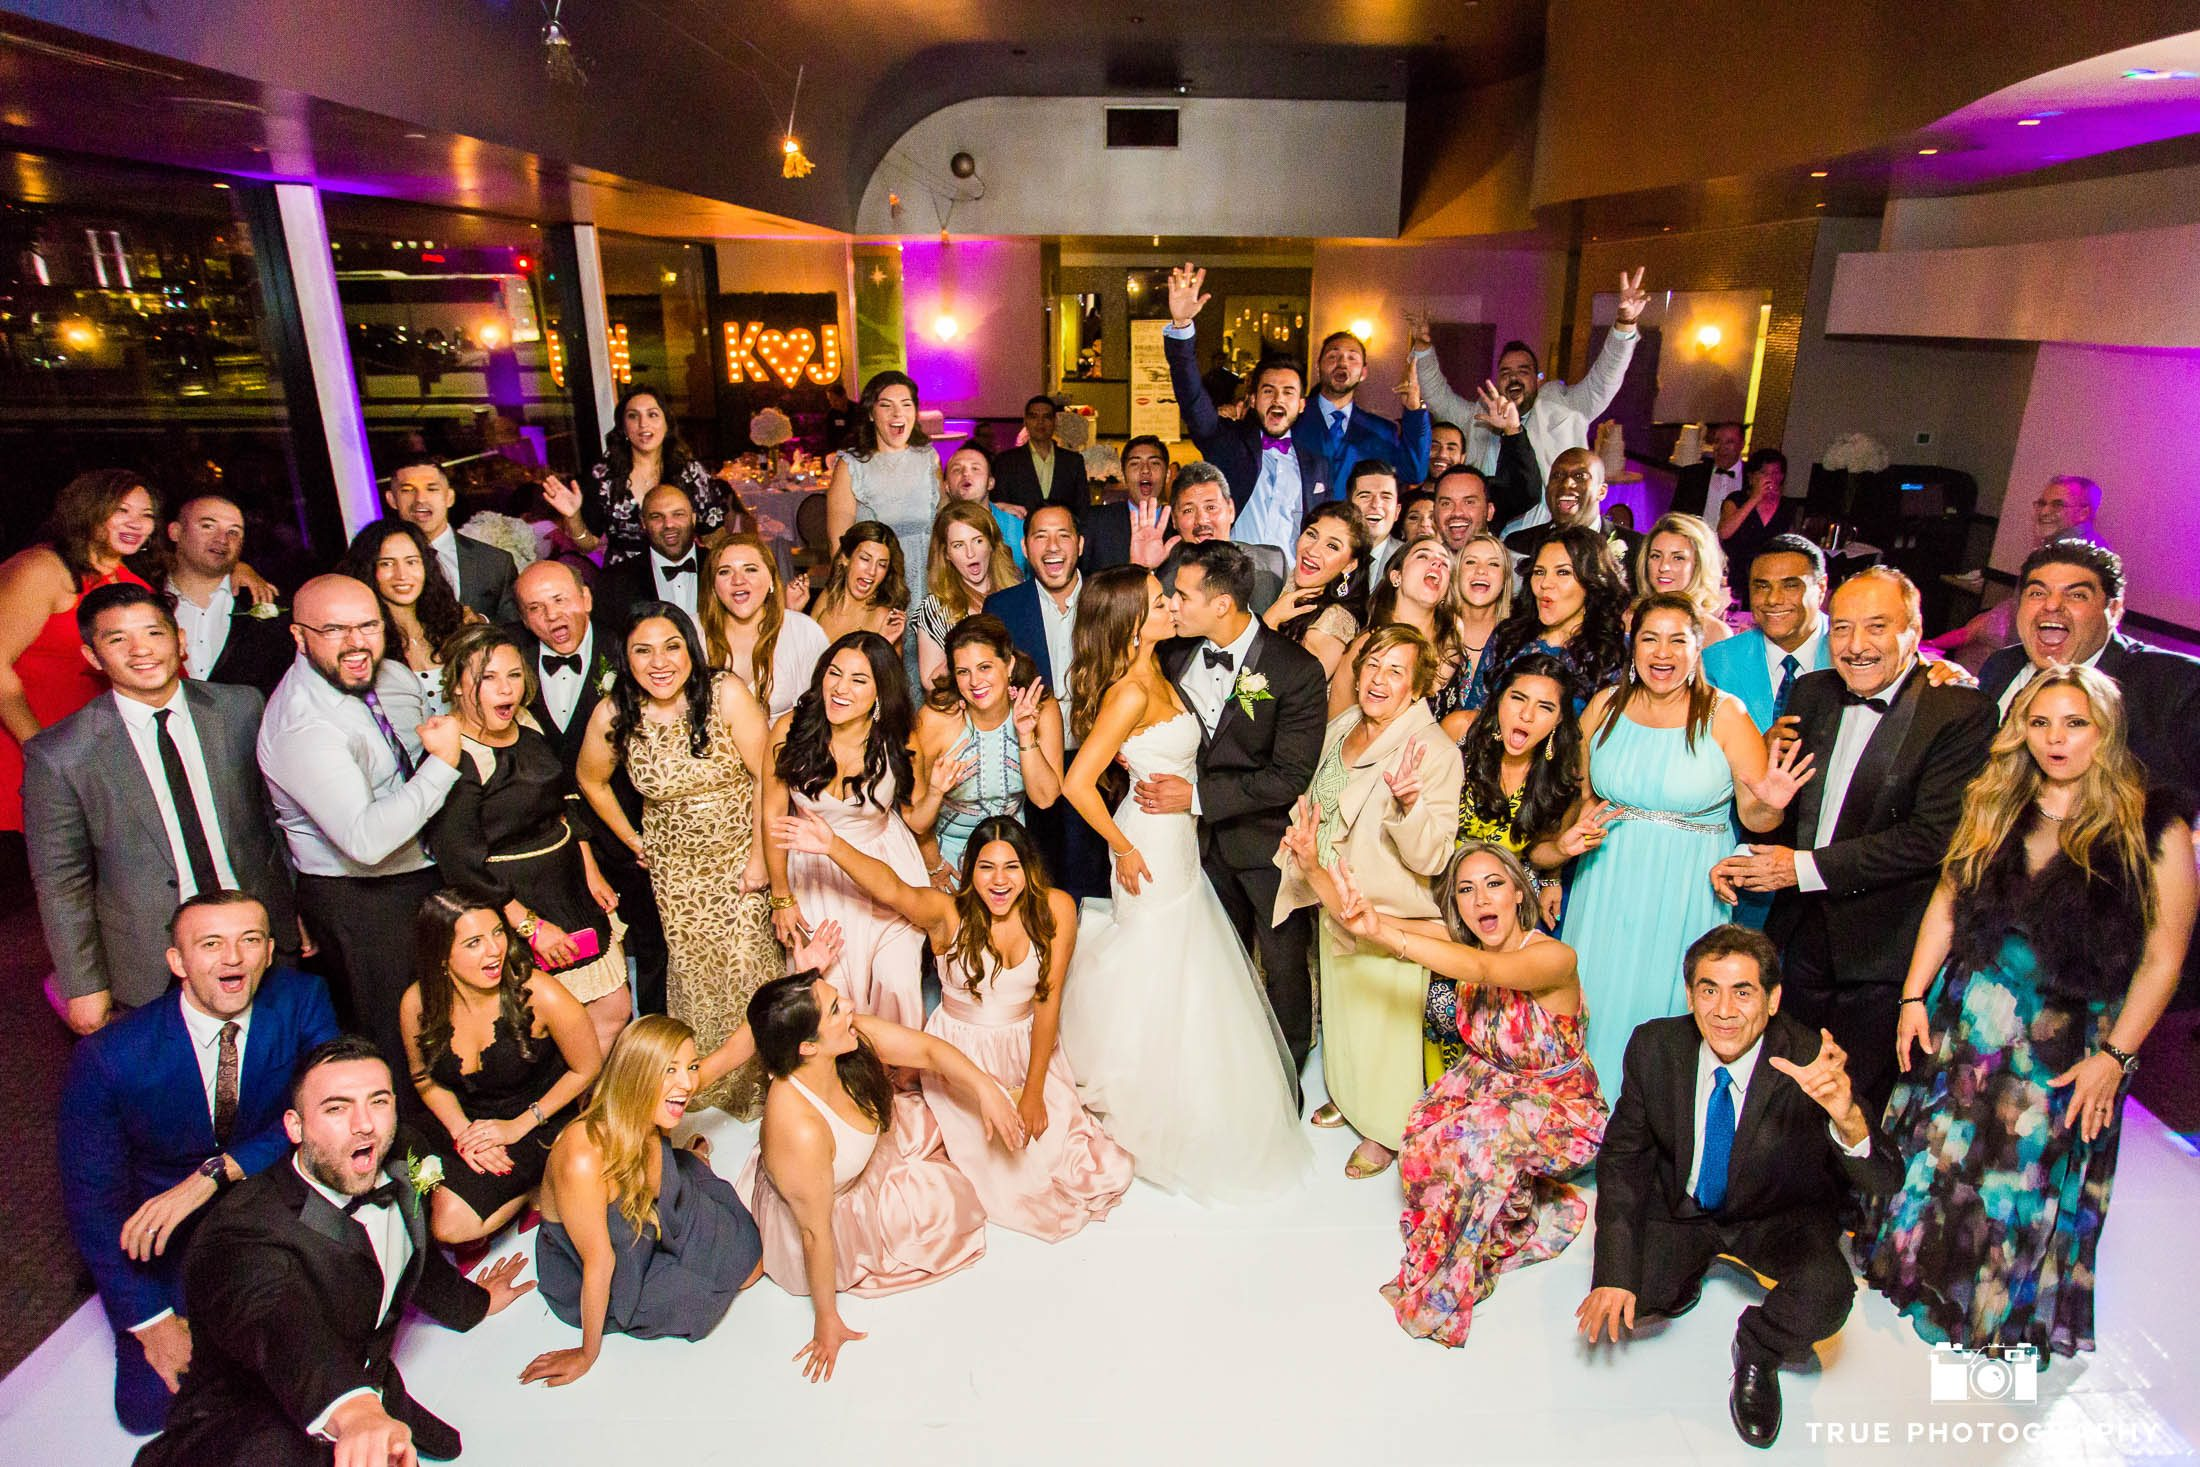 Guests join wedding couple on dance floor for group photo